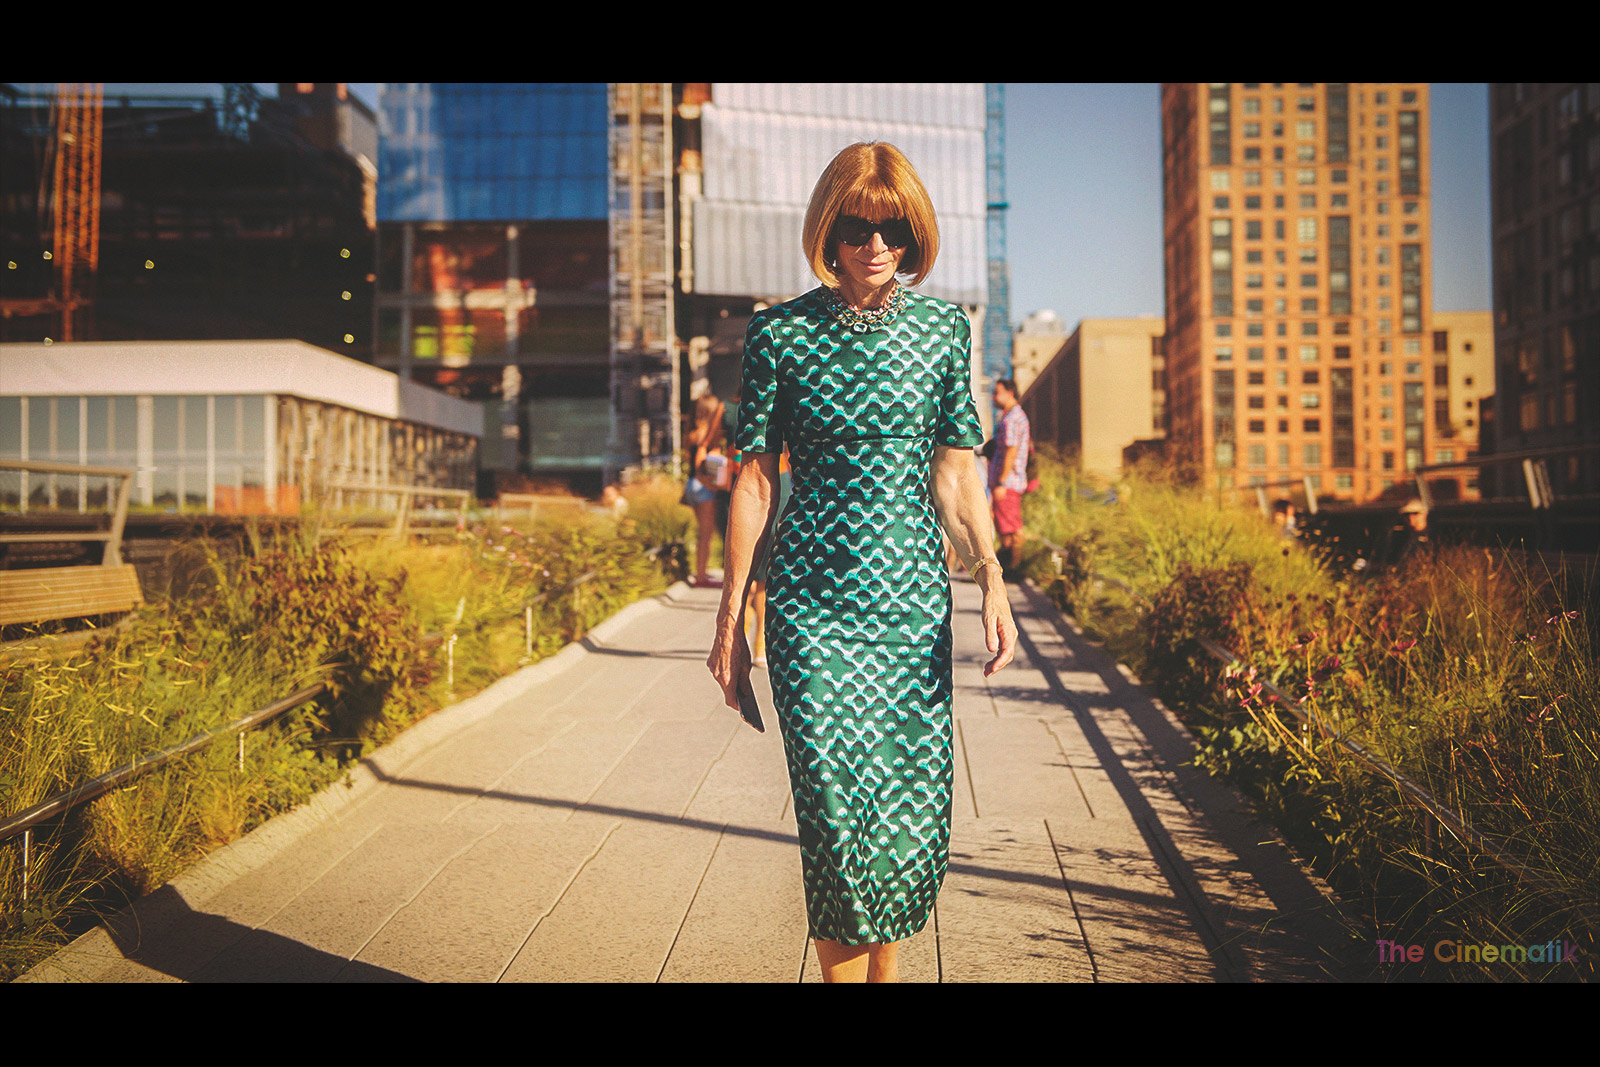 Vogue'Anna Wintour always has a smile for me at New York Fashion Week cinematic photograph by Kamal Lahmadi/THE CINEMATIK